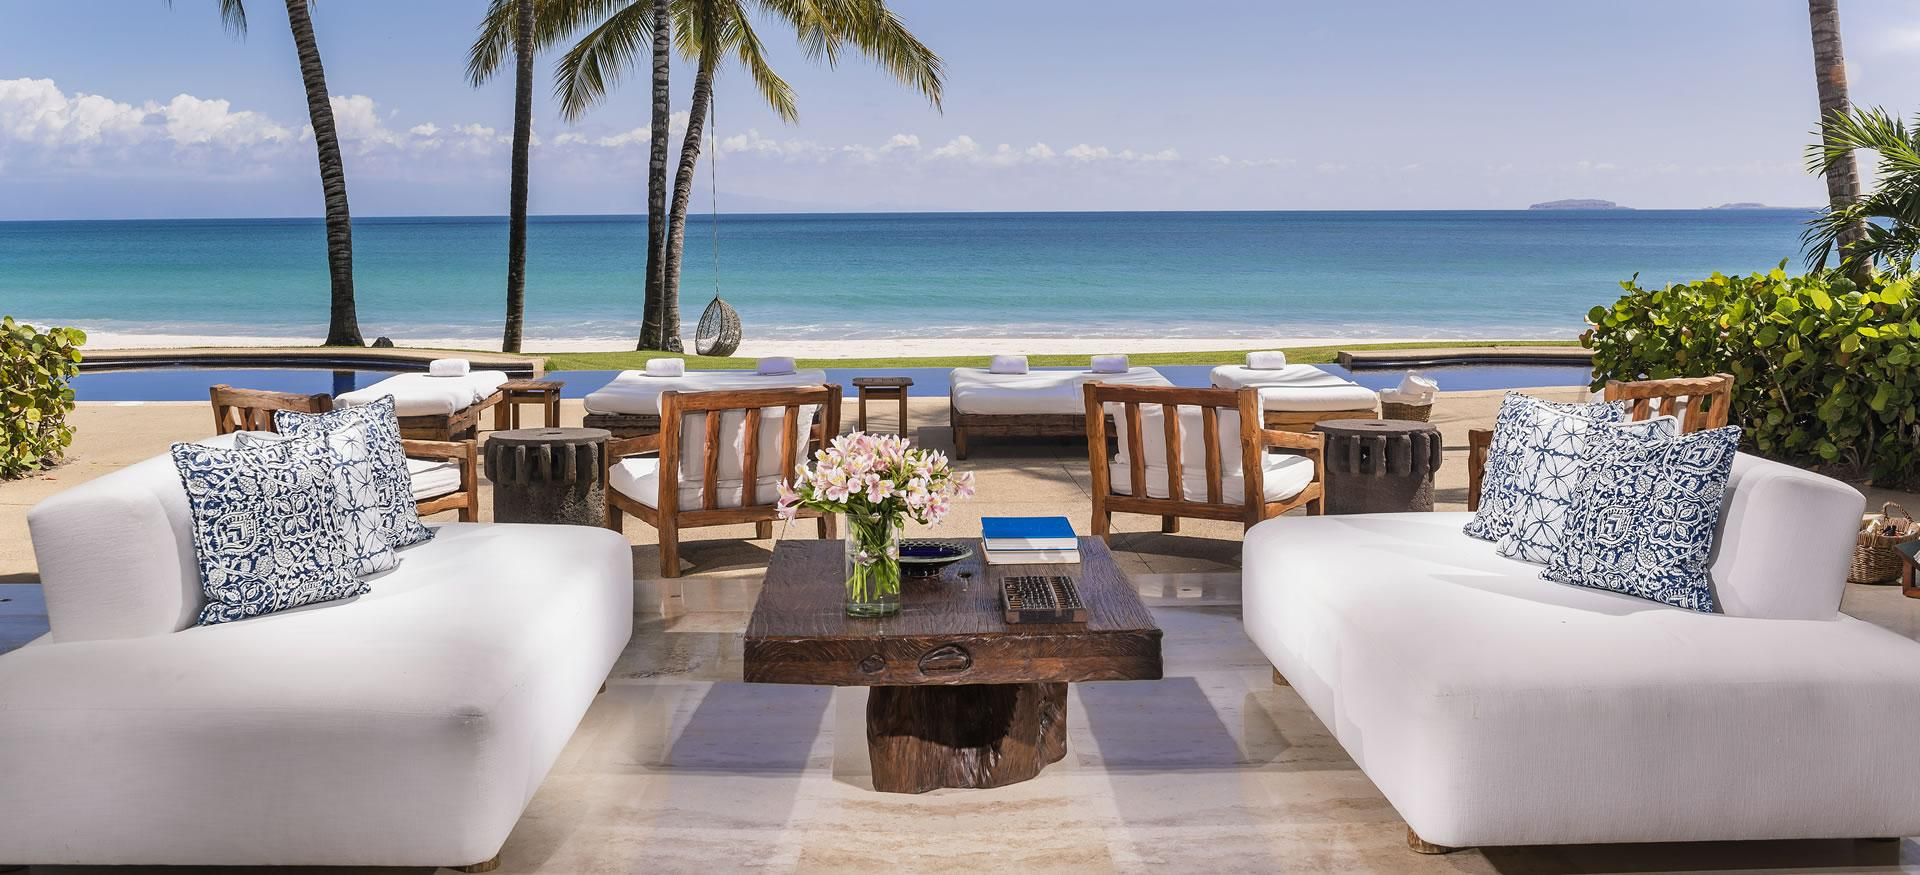 About Us, Punta-mita,Mexico